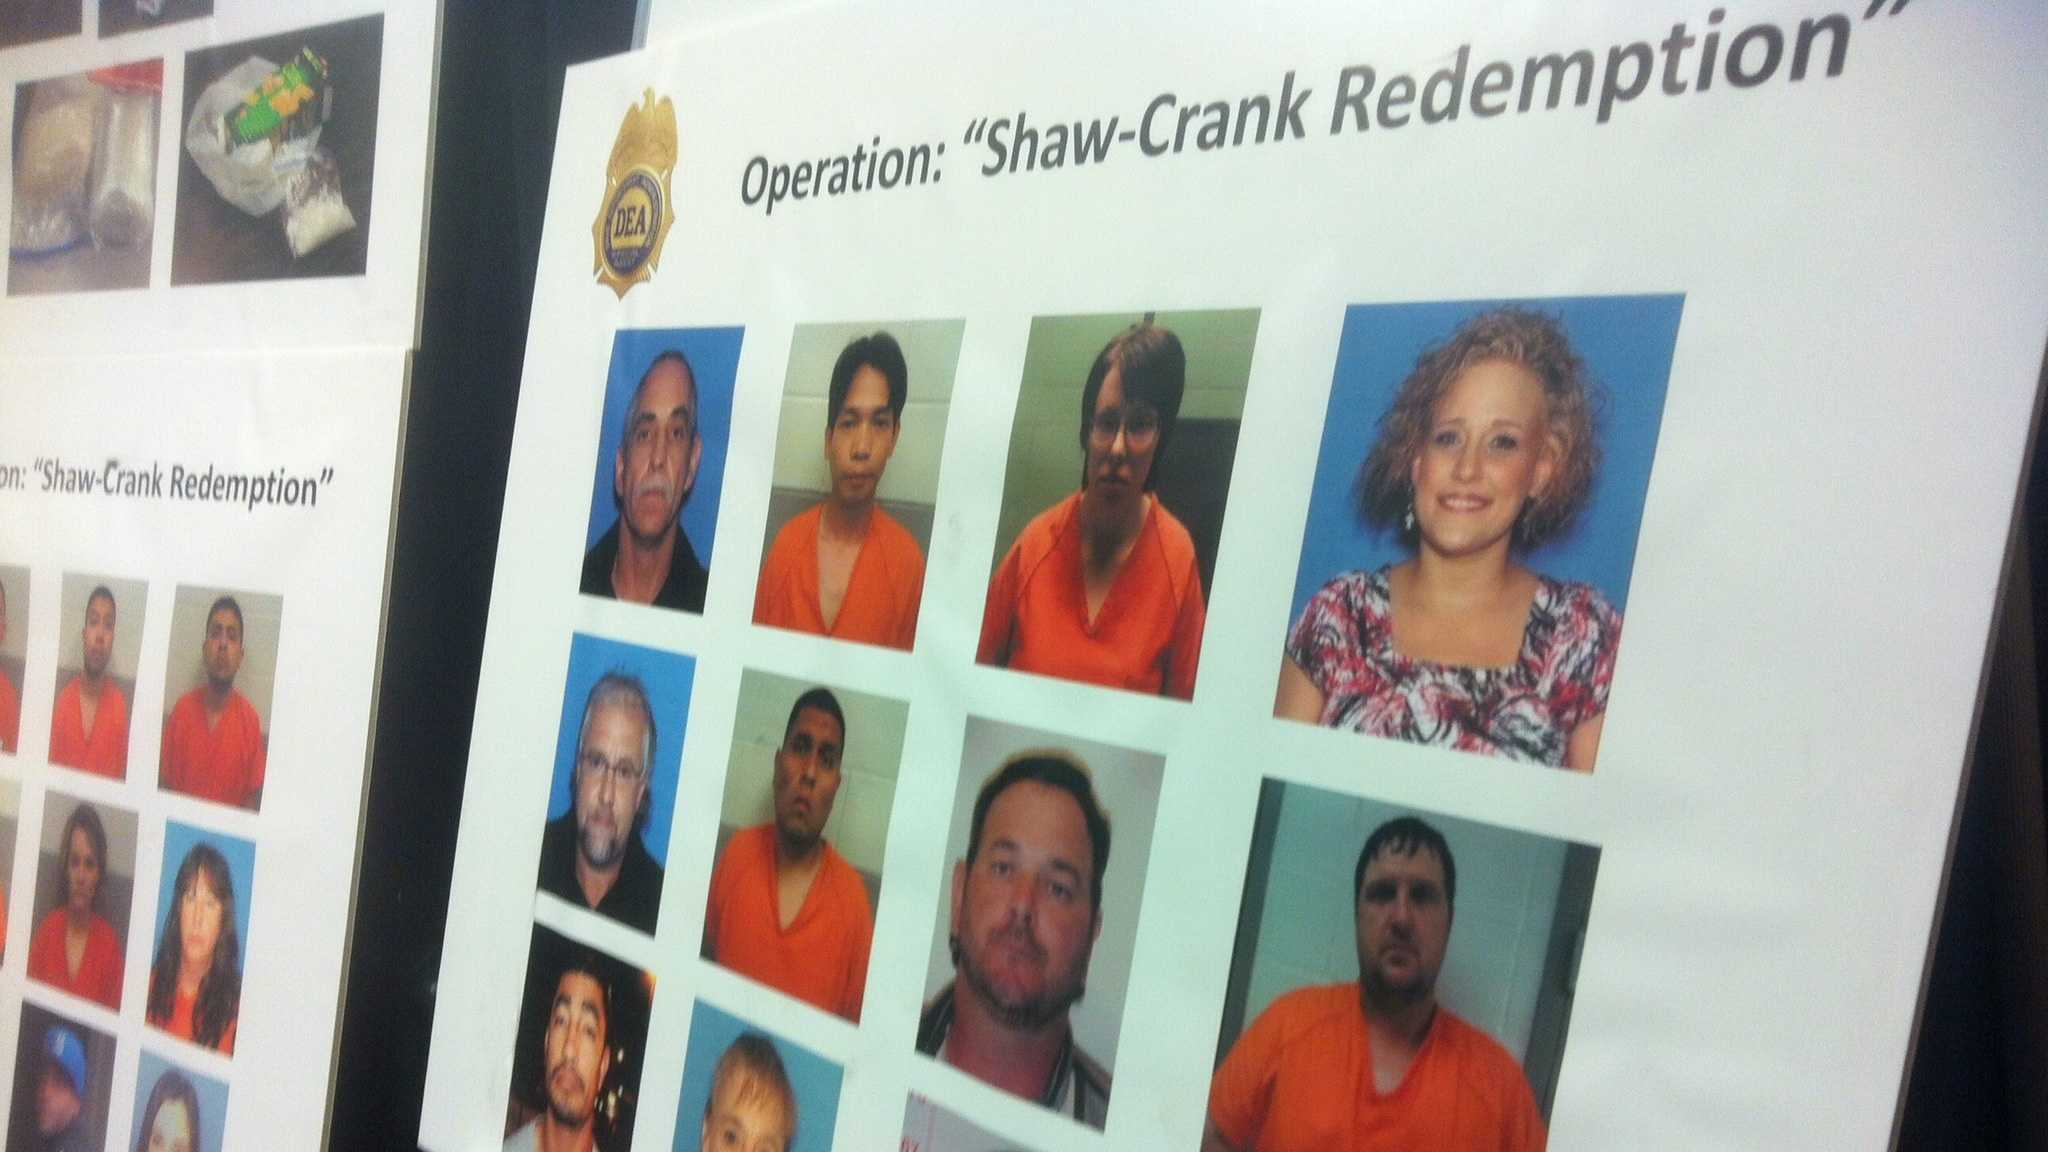 operation shaw crank redemption drug trafficking.jpg